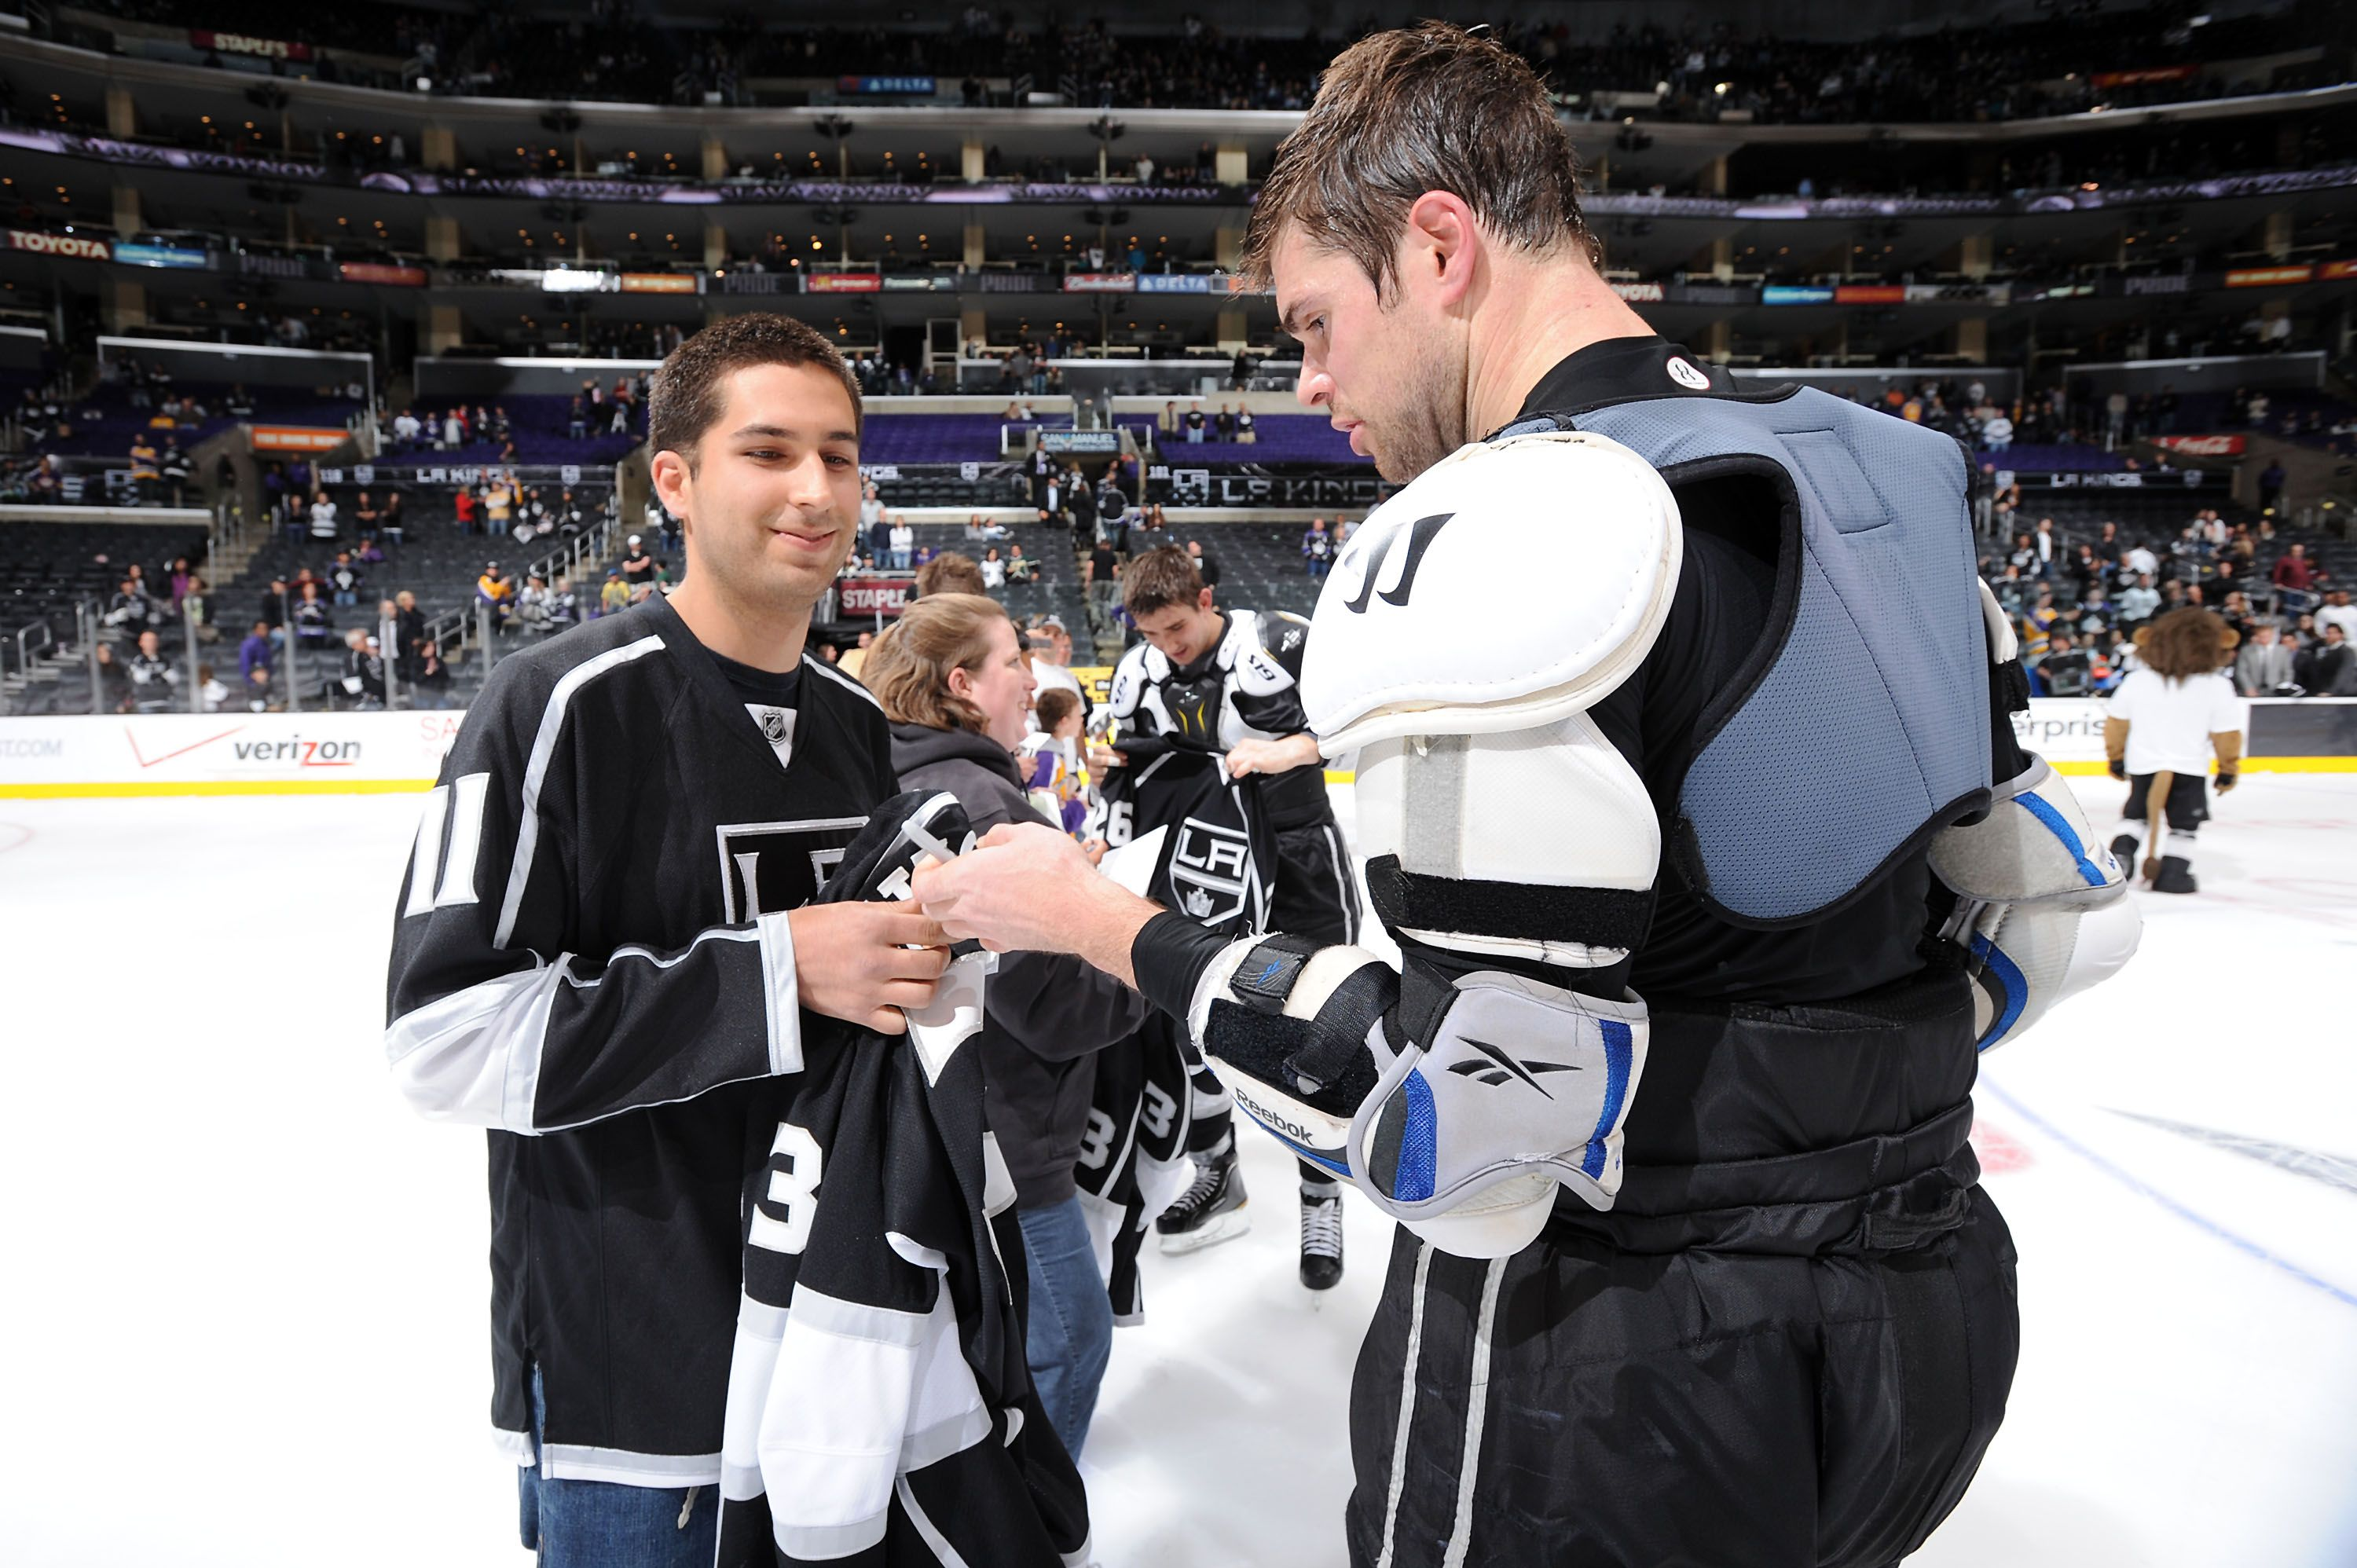 Mitchell Autographs A Jersey After A La Kings Game Actually Lucky Fan Gets Jersey After Last Kings Home Game Of 2012 Reg La Kings Hockey La Kings Kings Game